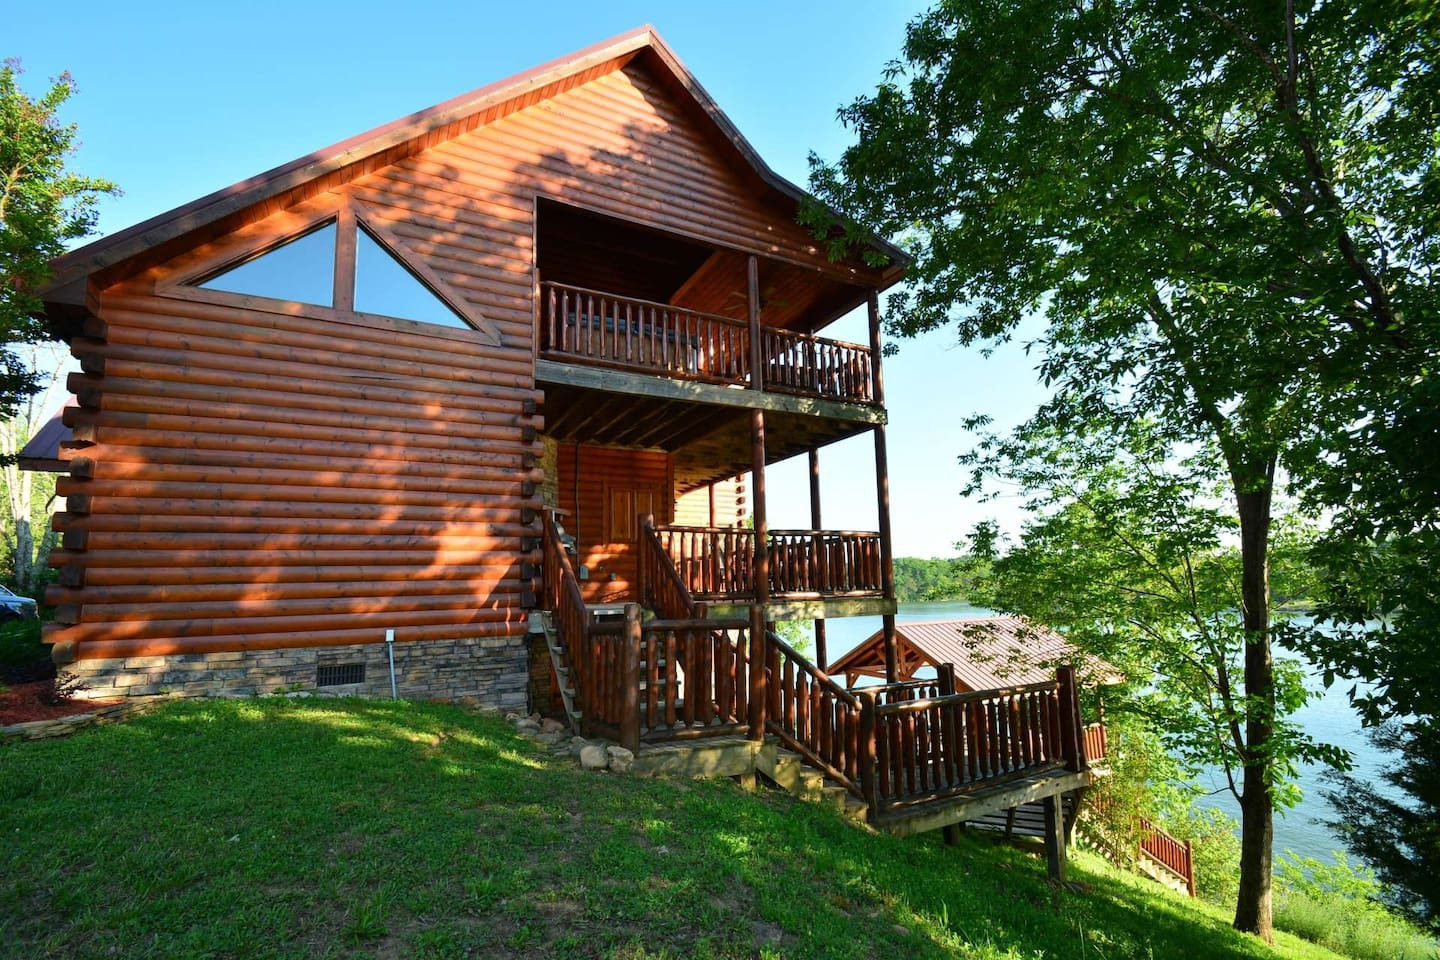 Two balconies for you to enjoy the great view of the lake and steps that lead down to the Gazebo.